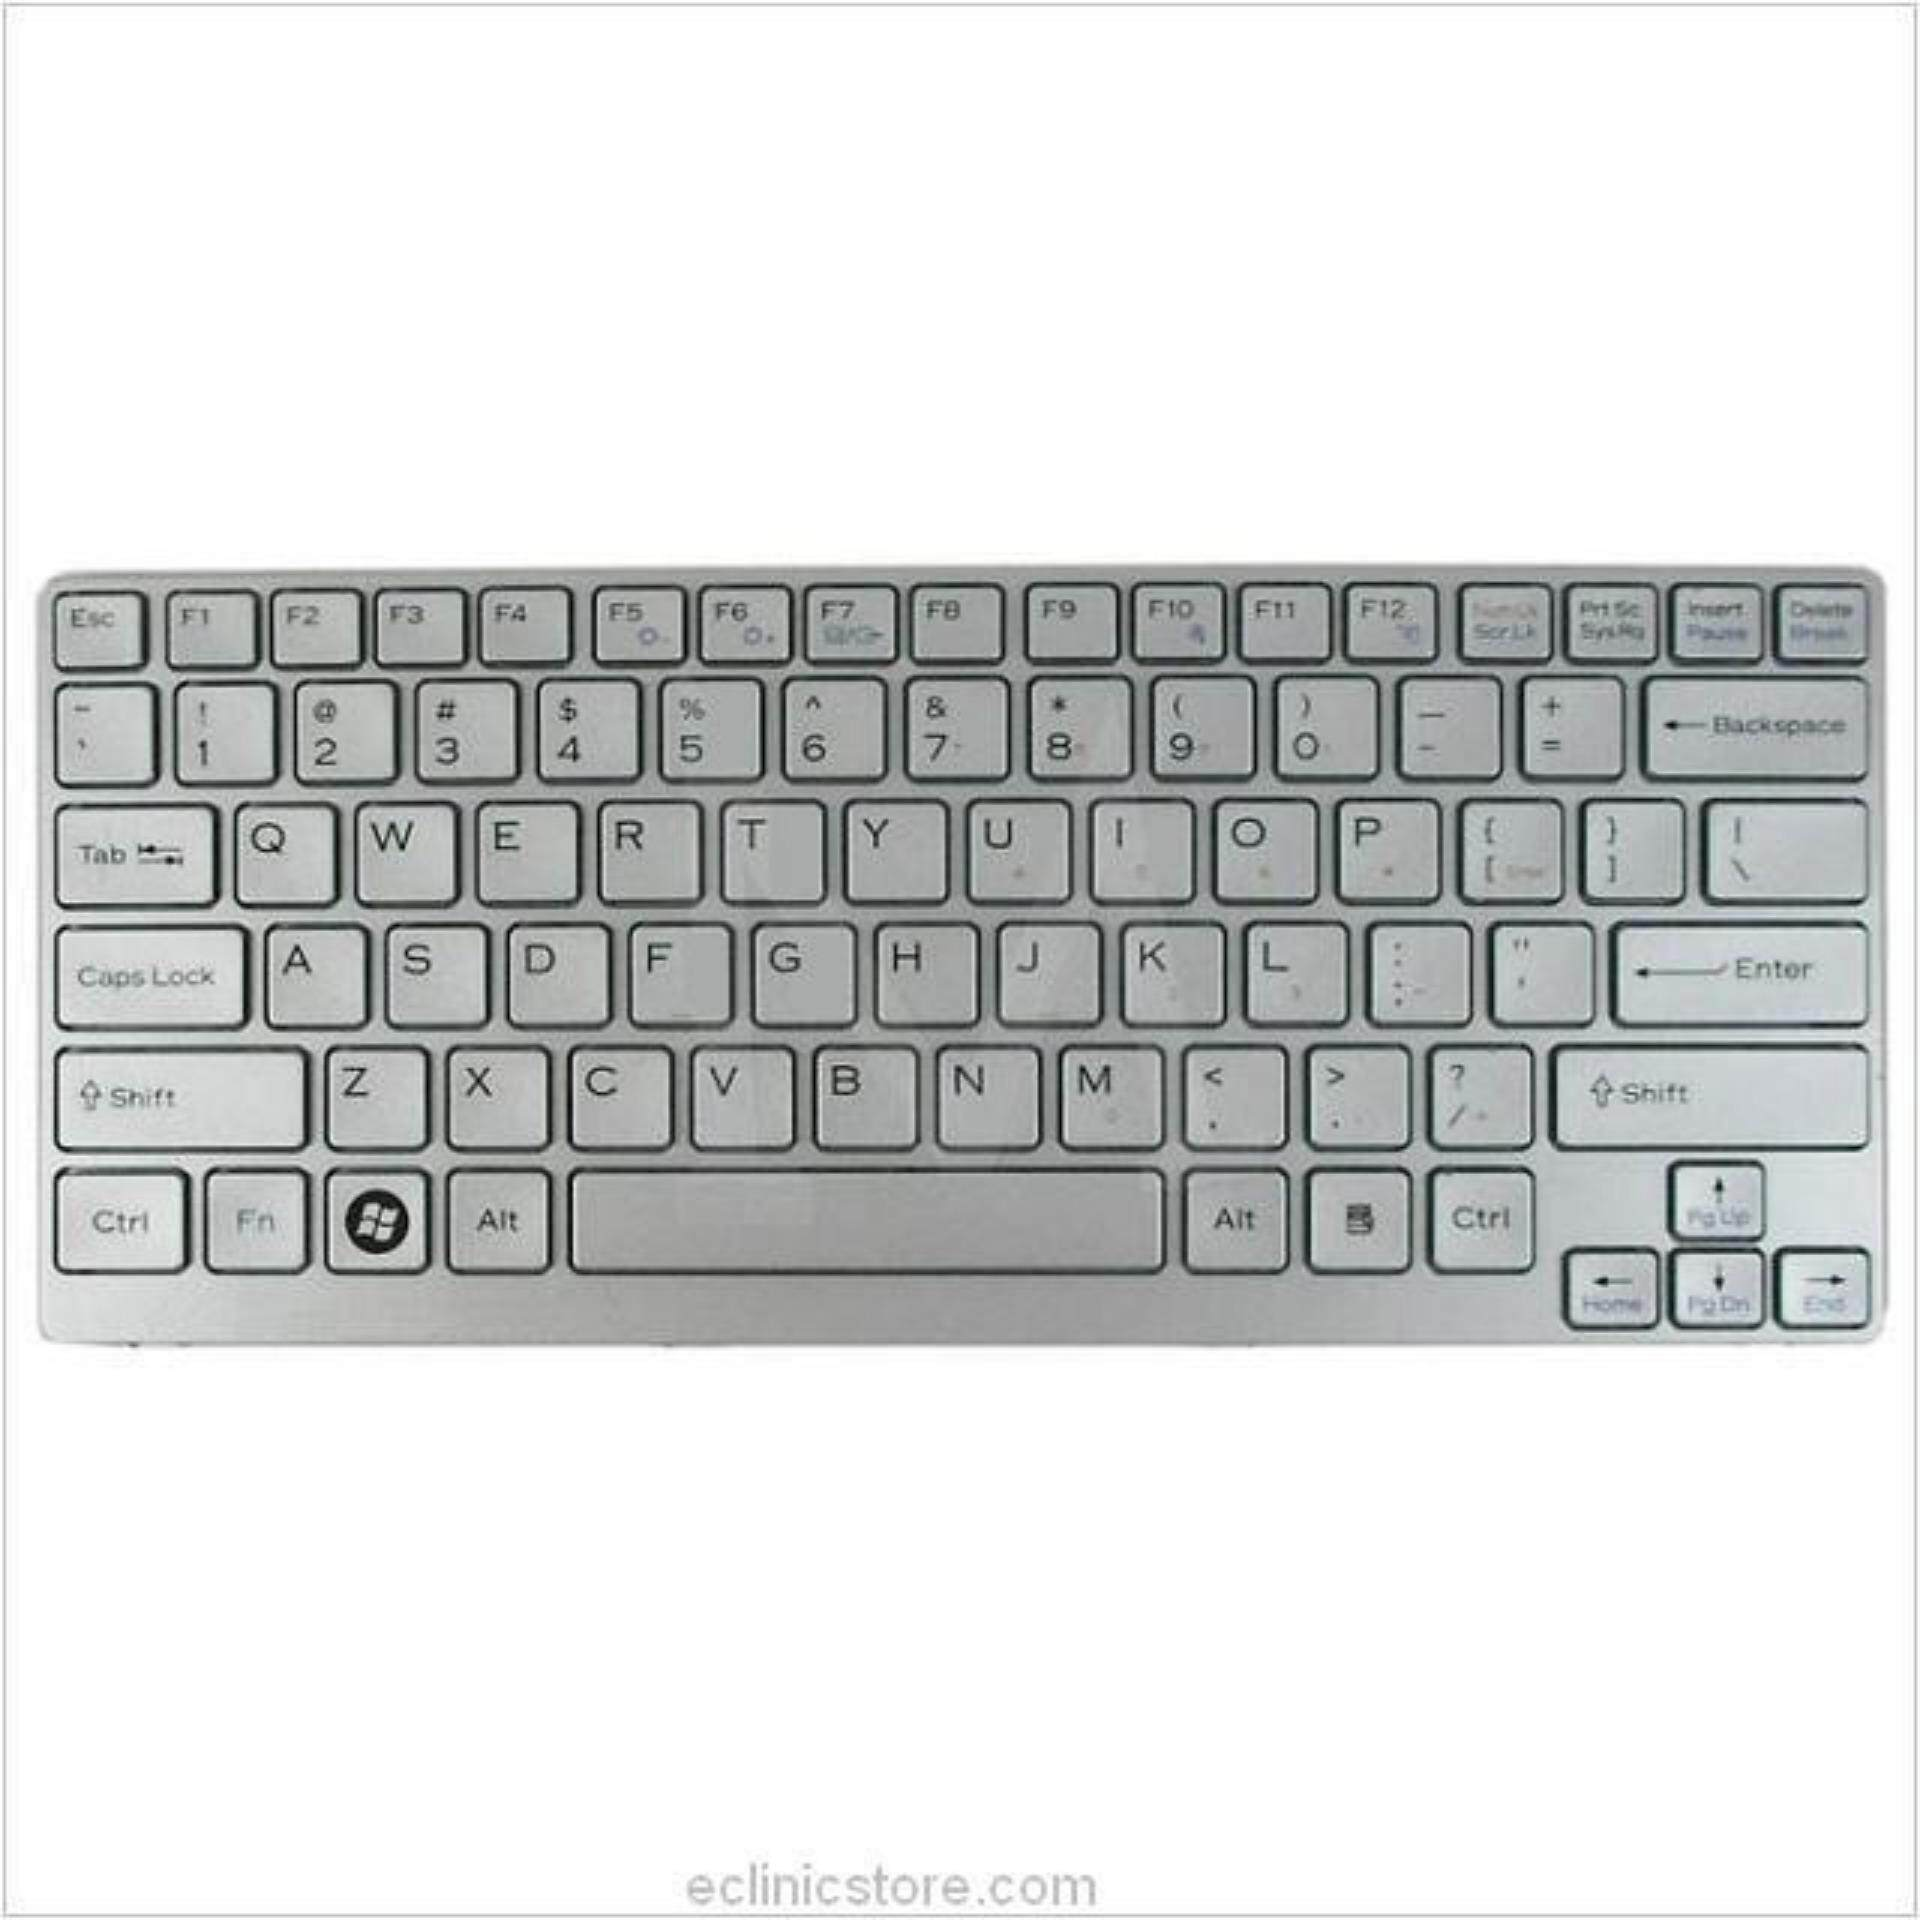 LAPTOP KEYBOARD (AEGD1U00020) FOR SONY VAIO VGN-CR SERIES